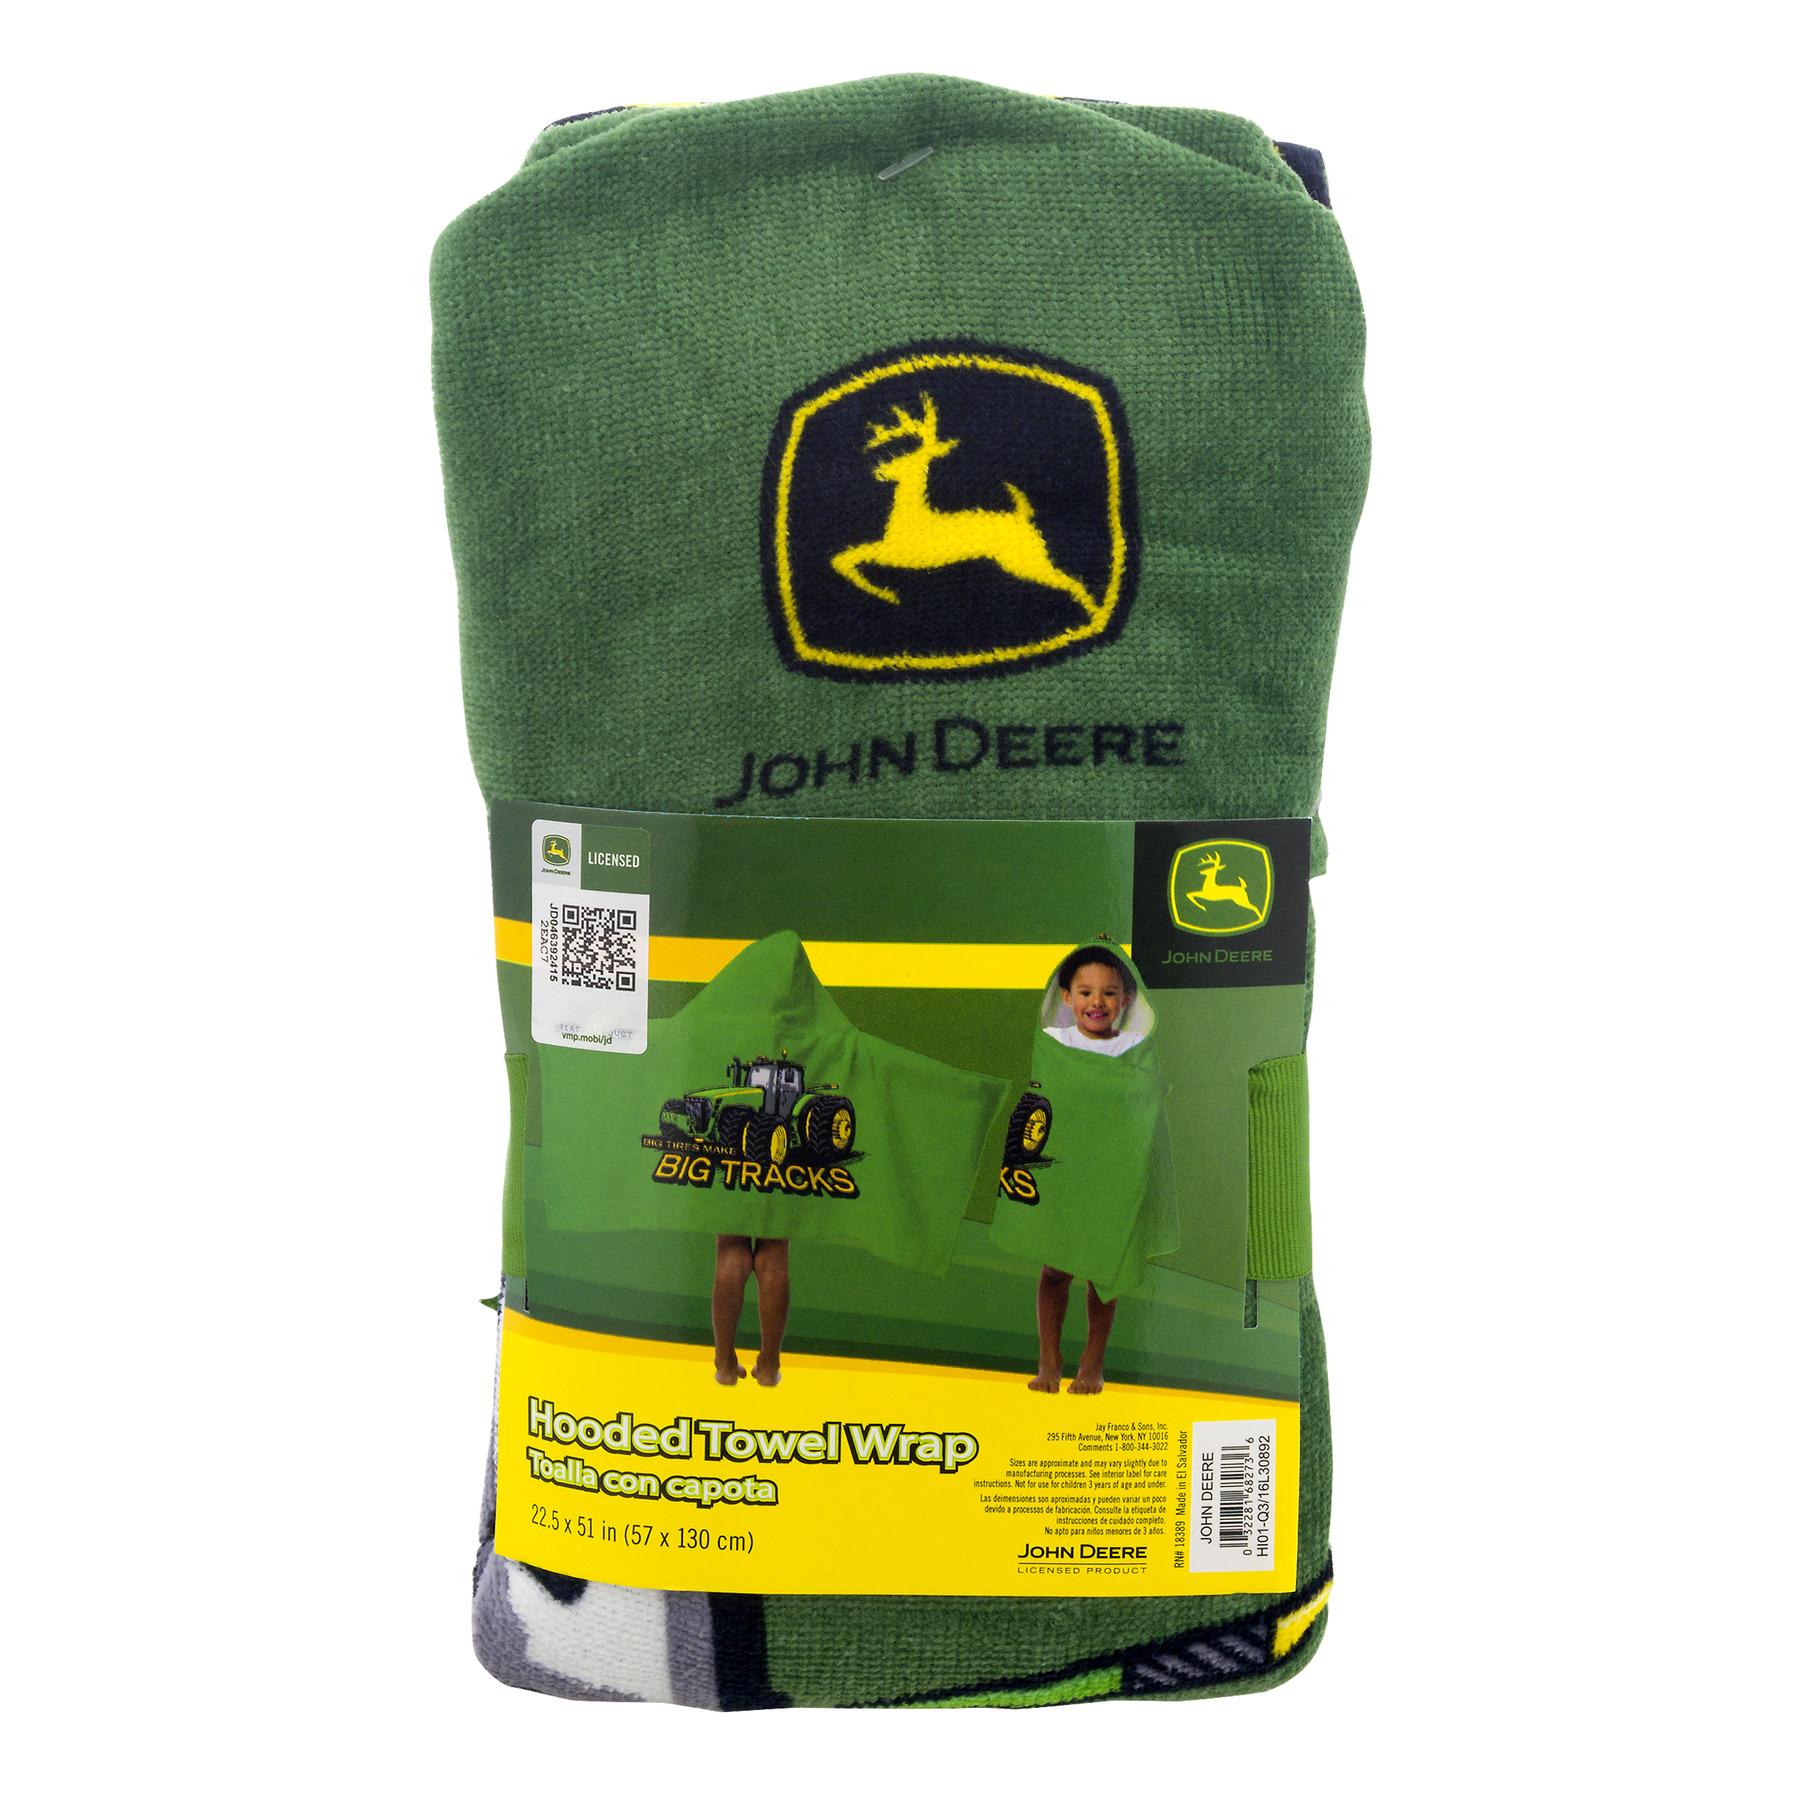 John Deere Hooded Towel Wrap, 1.0 CT